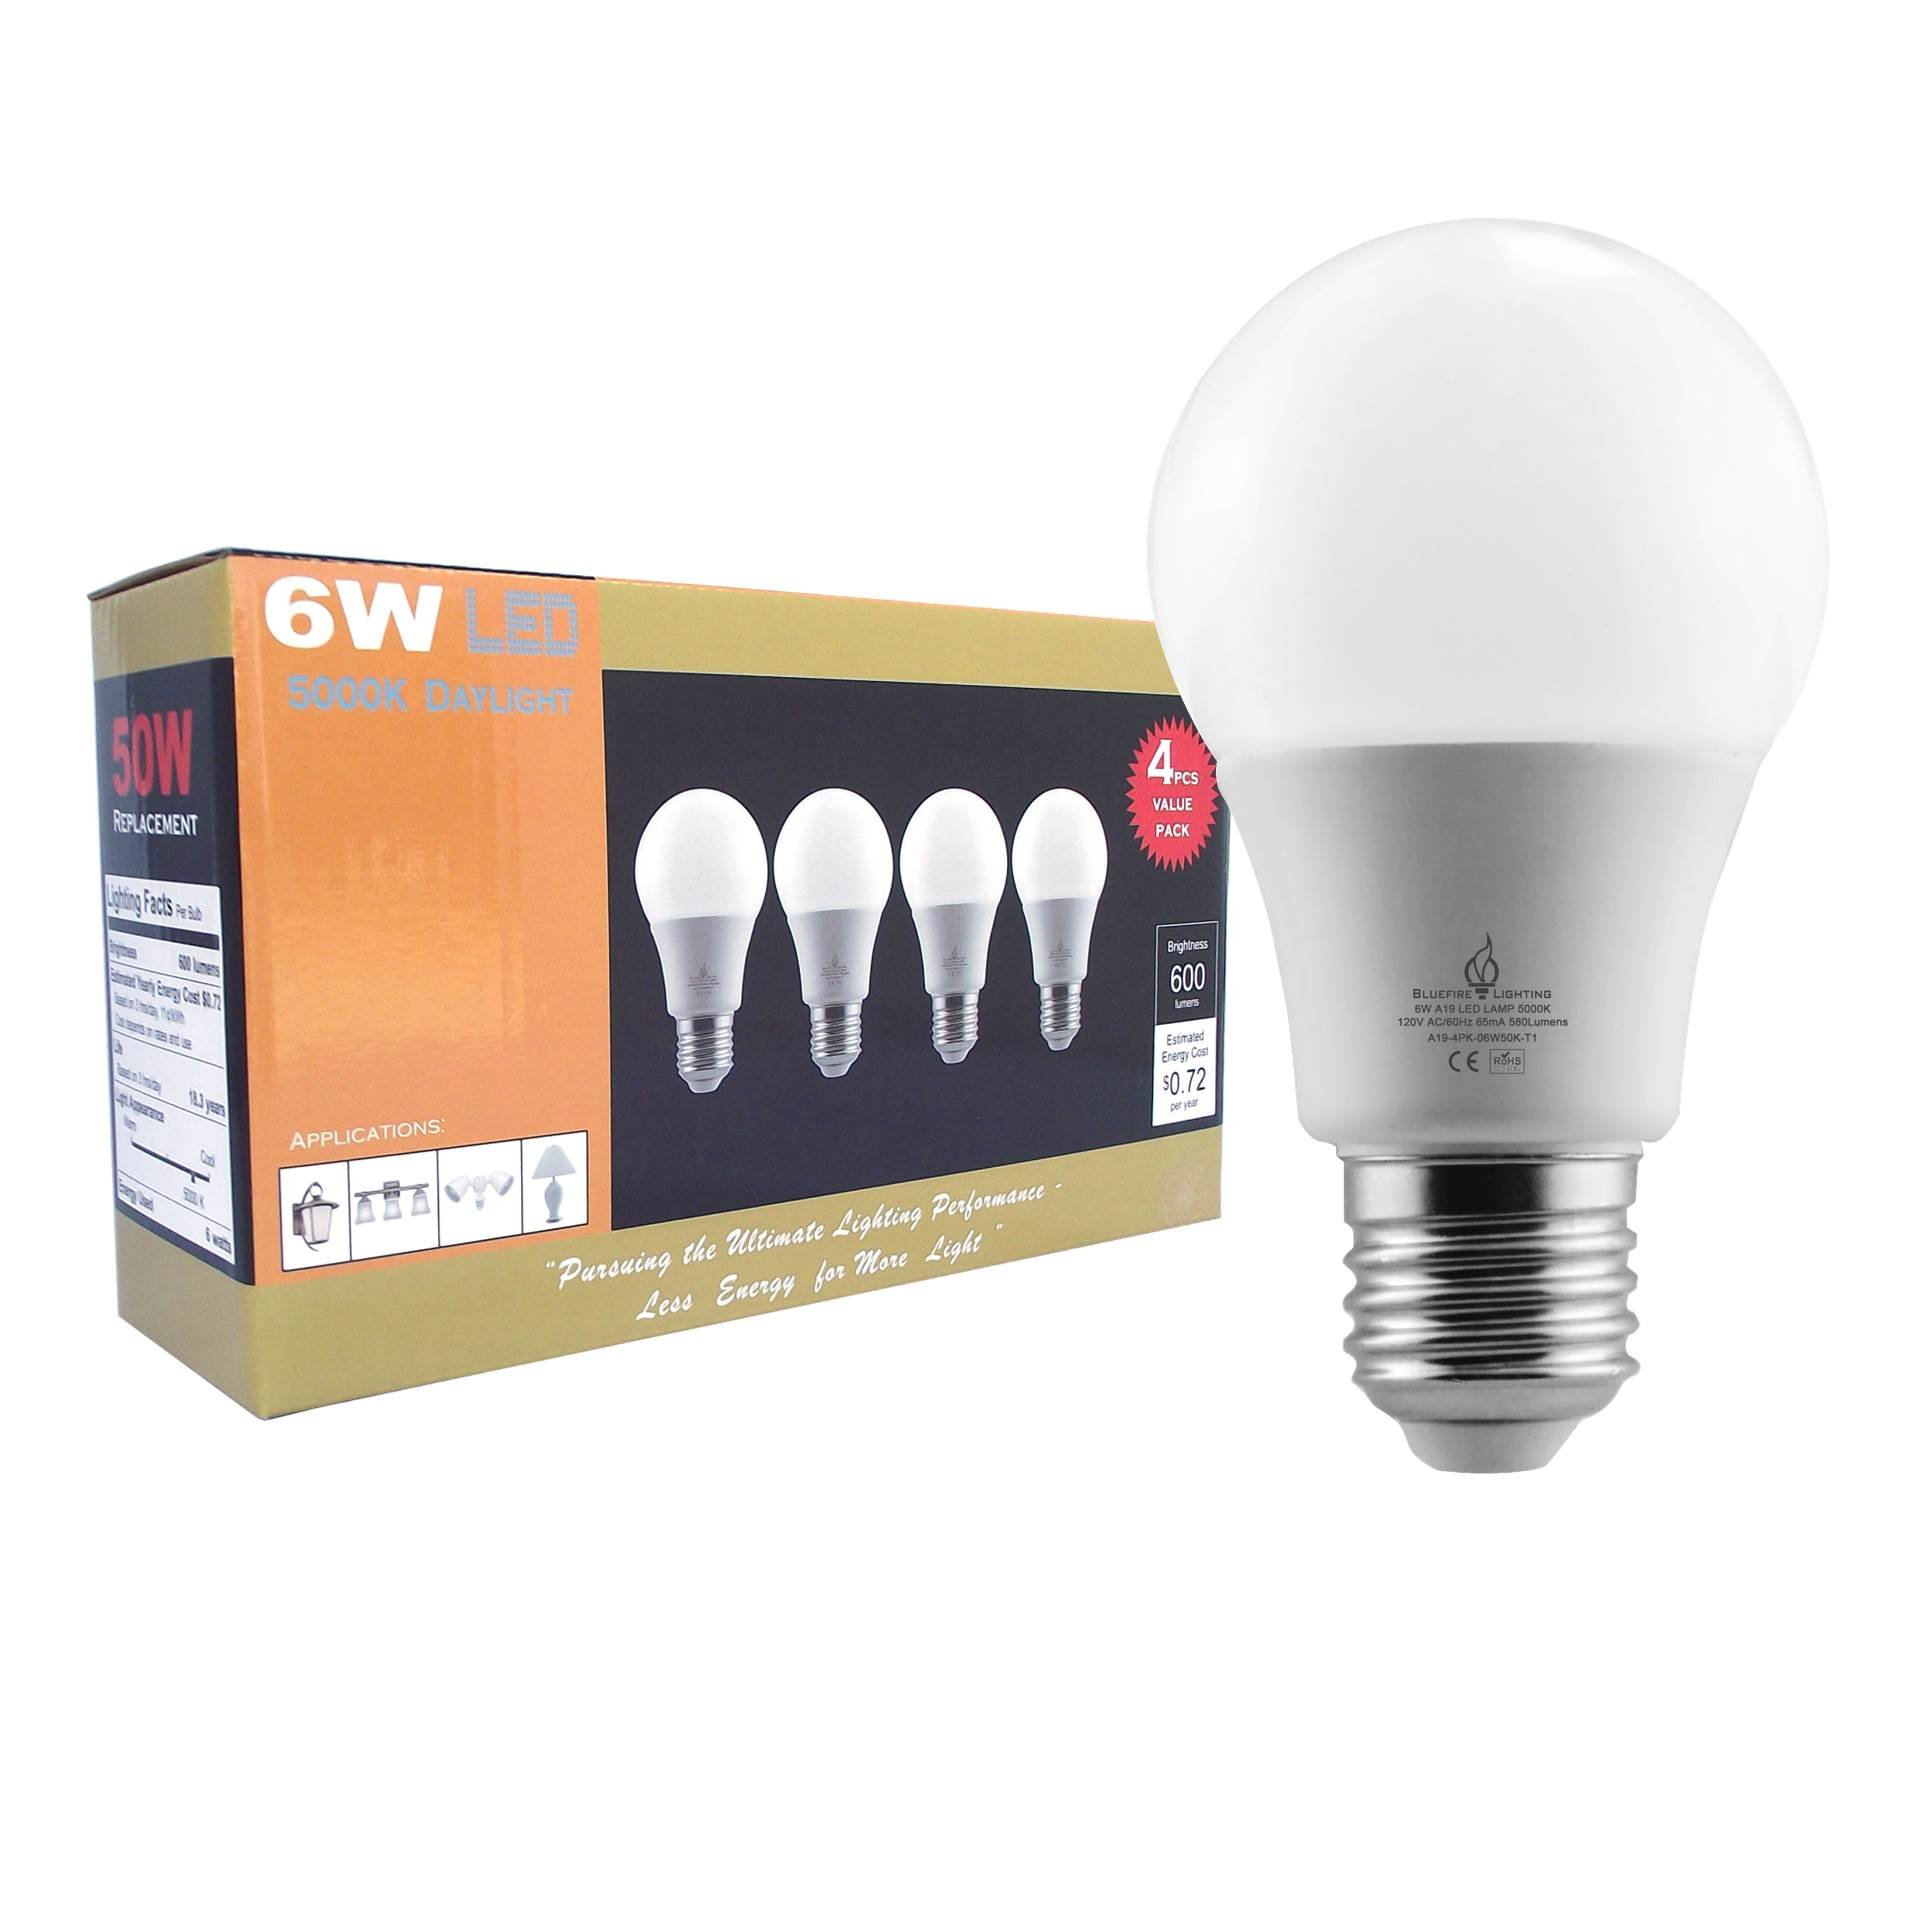 BLUEFIRE 6 Watts A19 LED Light Bulbs, Natural Daylight 5000K, 600 Lumens, 40W Replacement, Flickering-Free Light - 4PCS Value Pack, Great Light Output with Low Energy Use